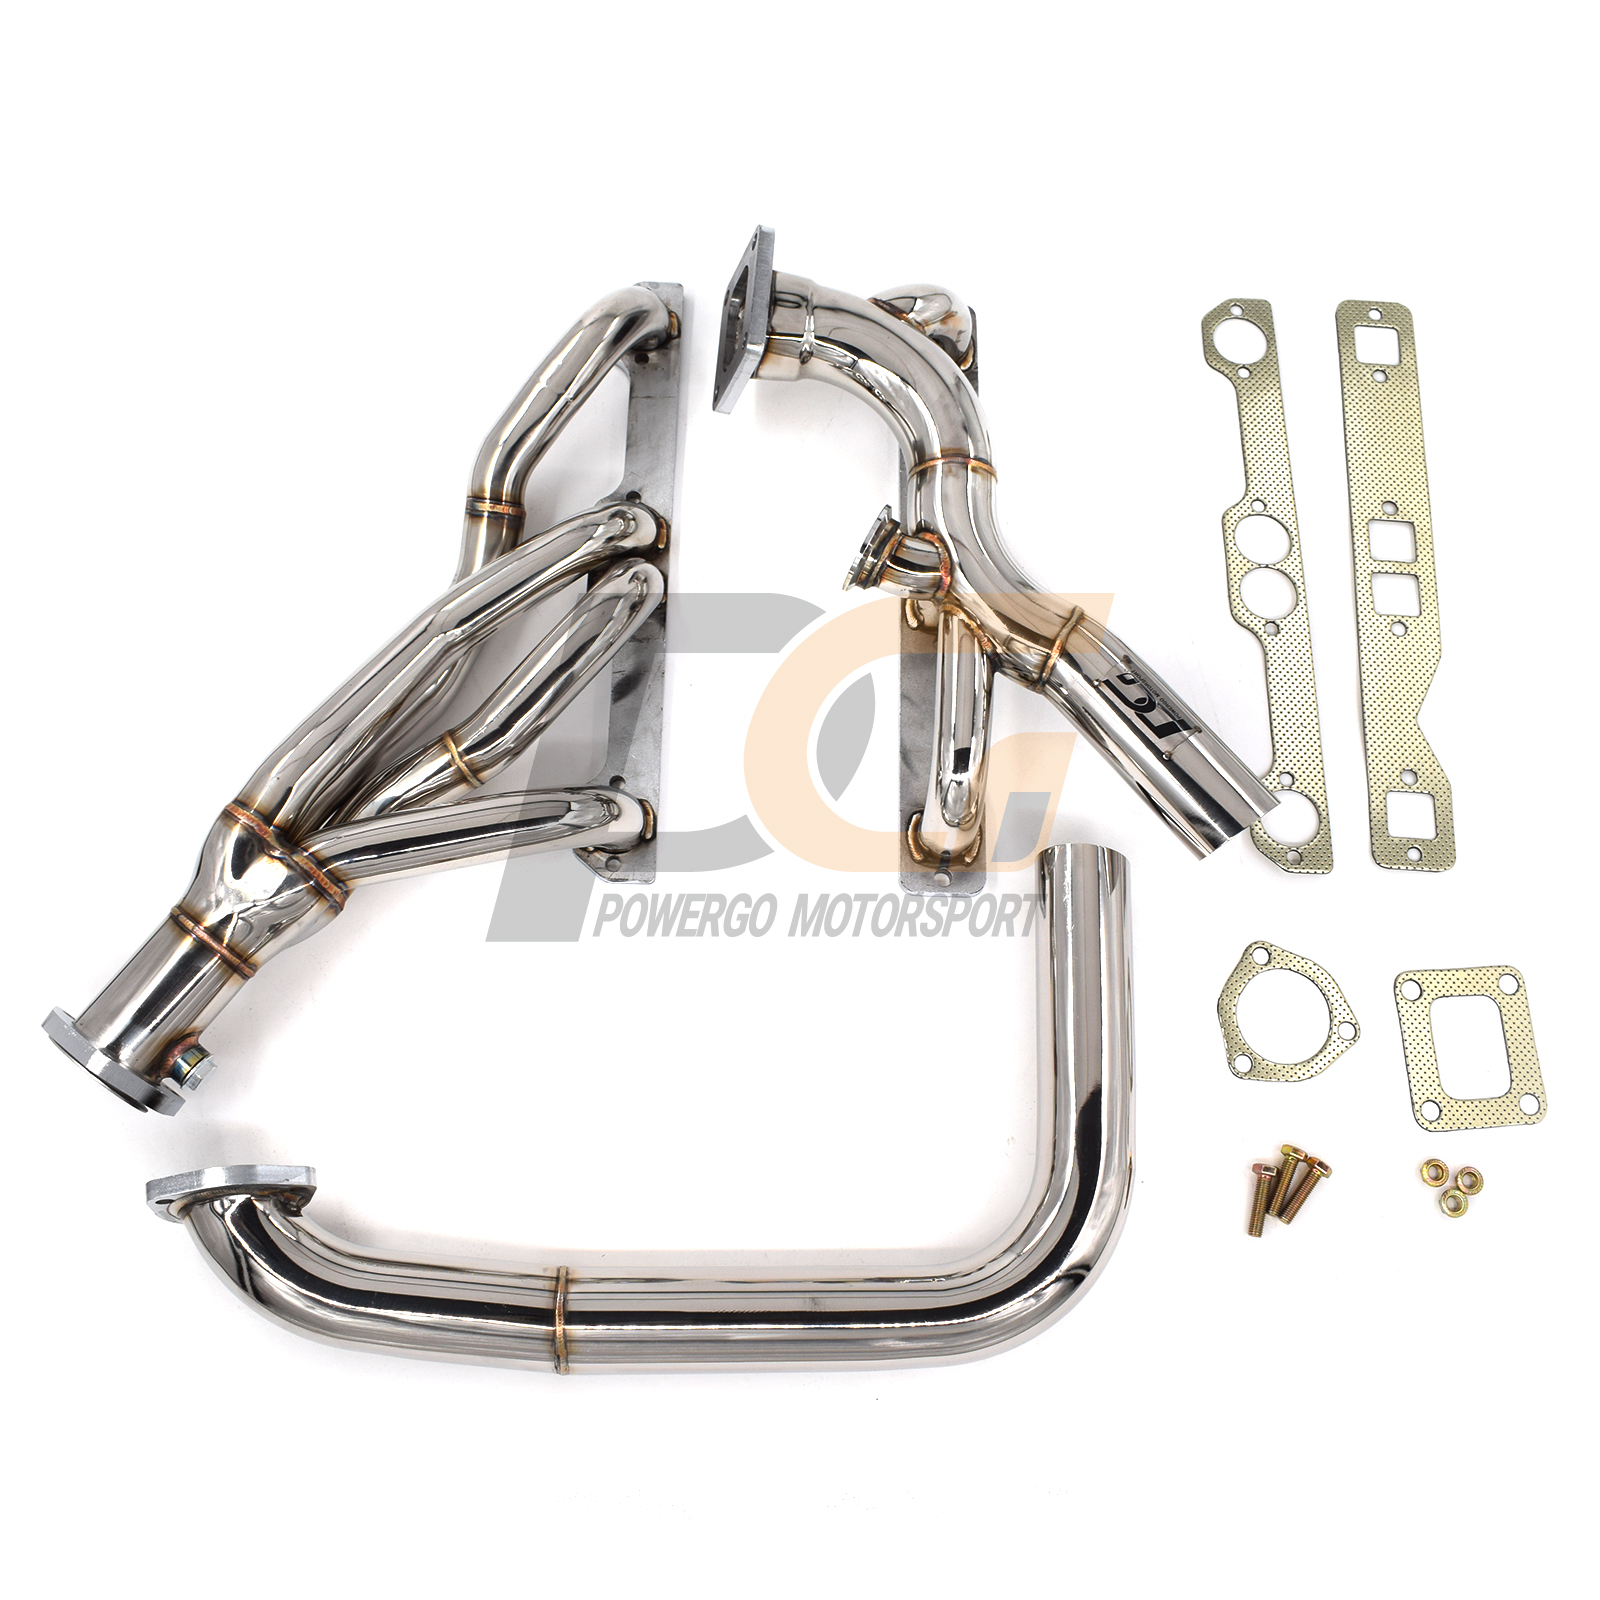 Long Tube Headers for Chevy GMC C10 C20 C30 Pickup 1963-1987 2WD Small Block V8